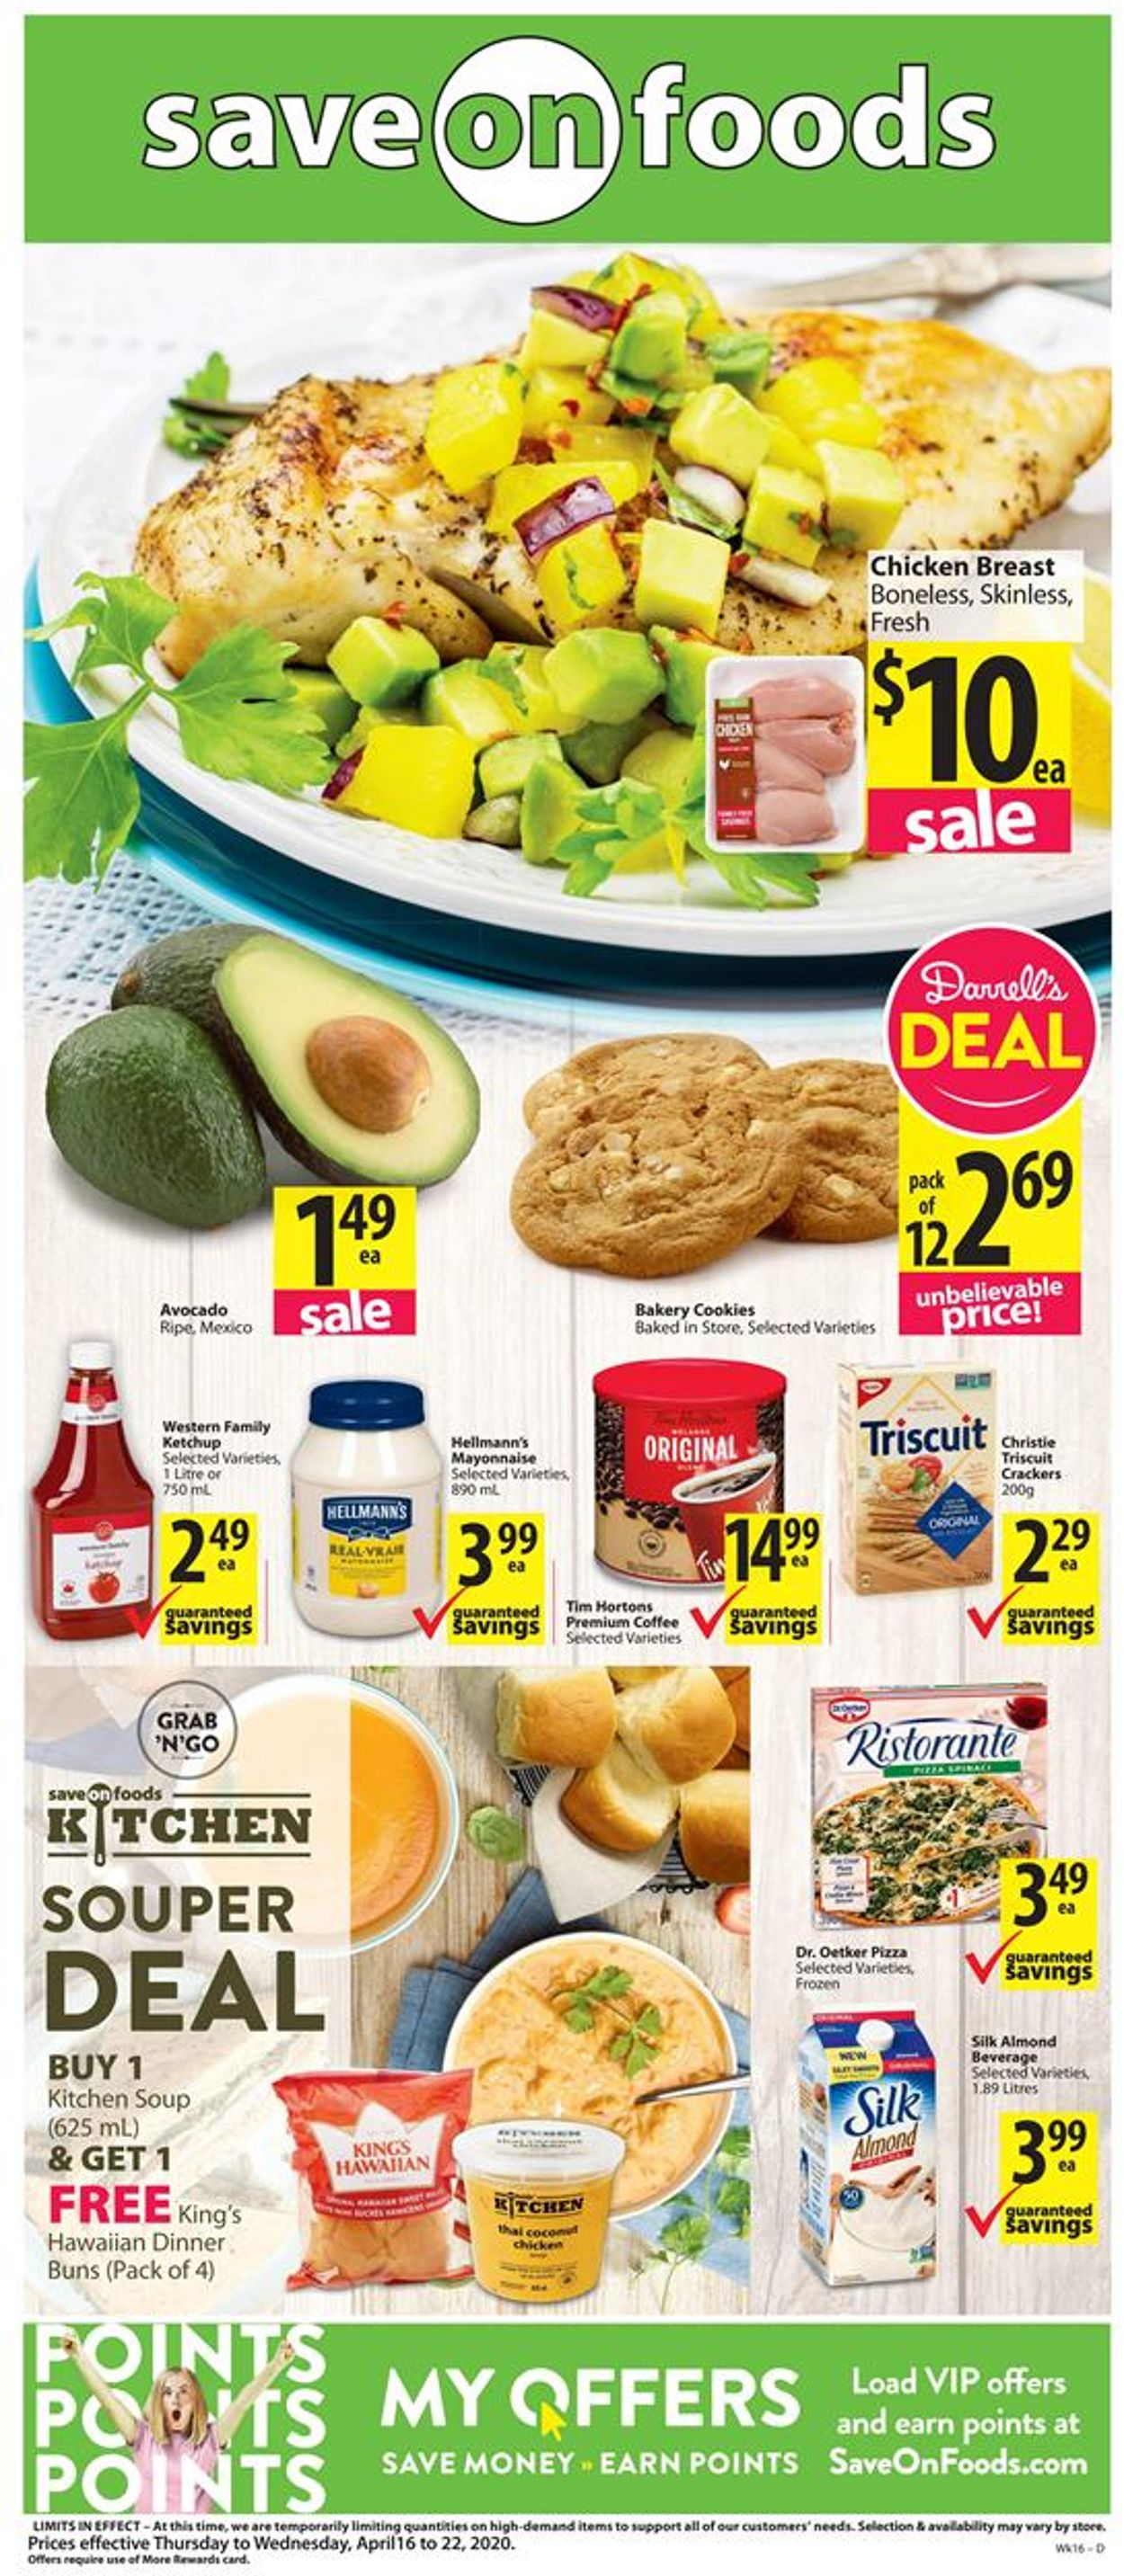 Save-On-Foods Flyer - 04/16-04/22/2020